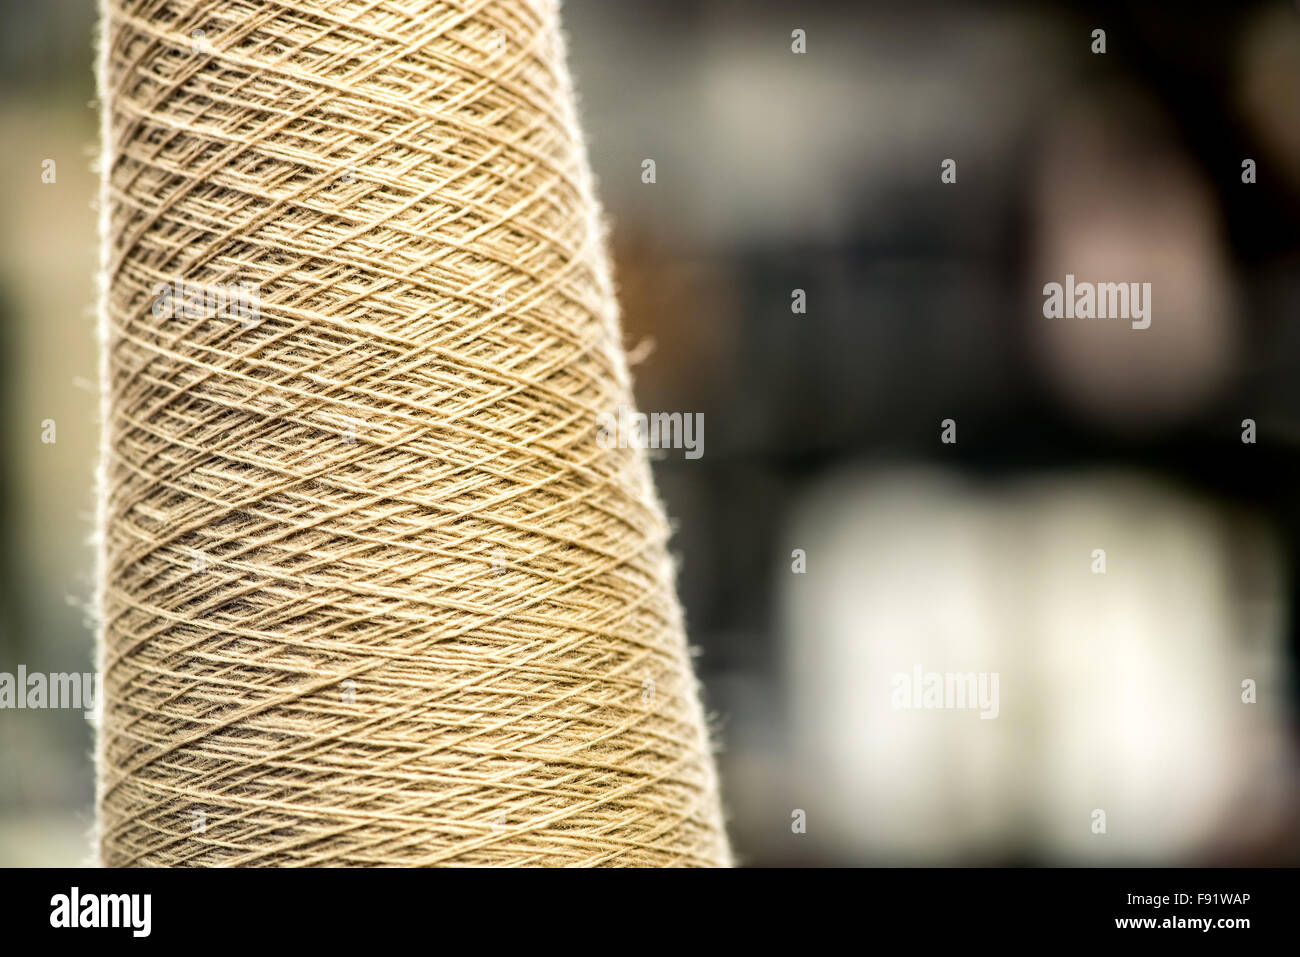 Close Up of Undyed Natural Cotton Thread Wound on Spool in Industrial Manufacturing Warehouse, Still Life with Copy - Stock Image